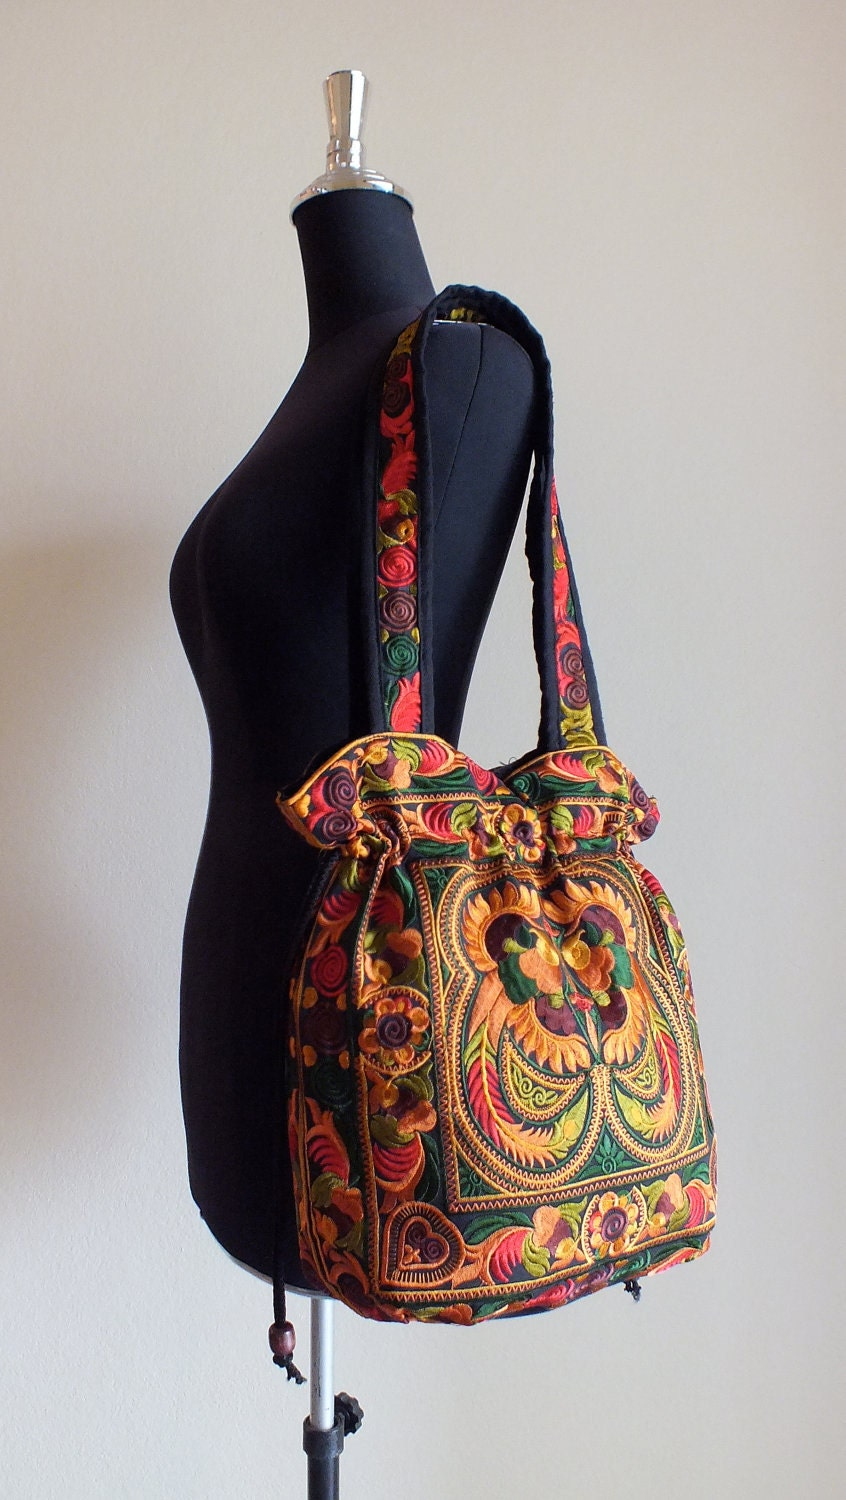 Ethnic handmade bag vintage style work beautifulBoho Bags